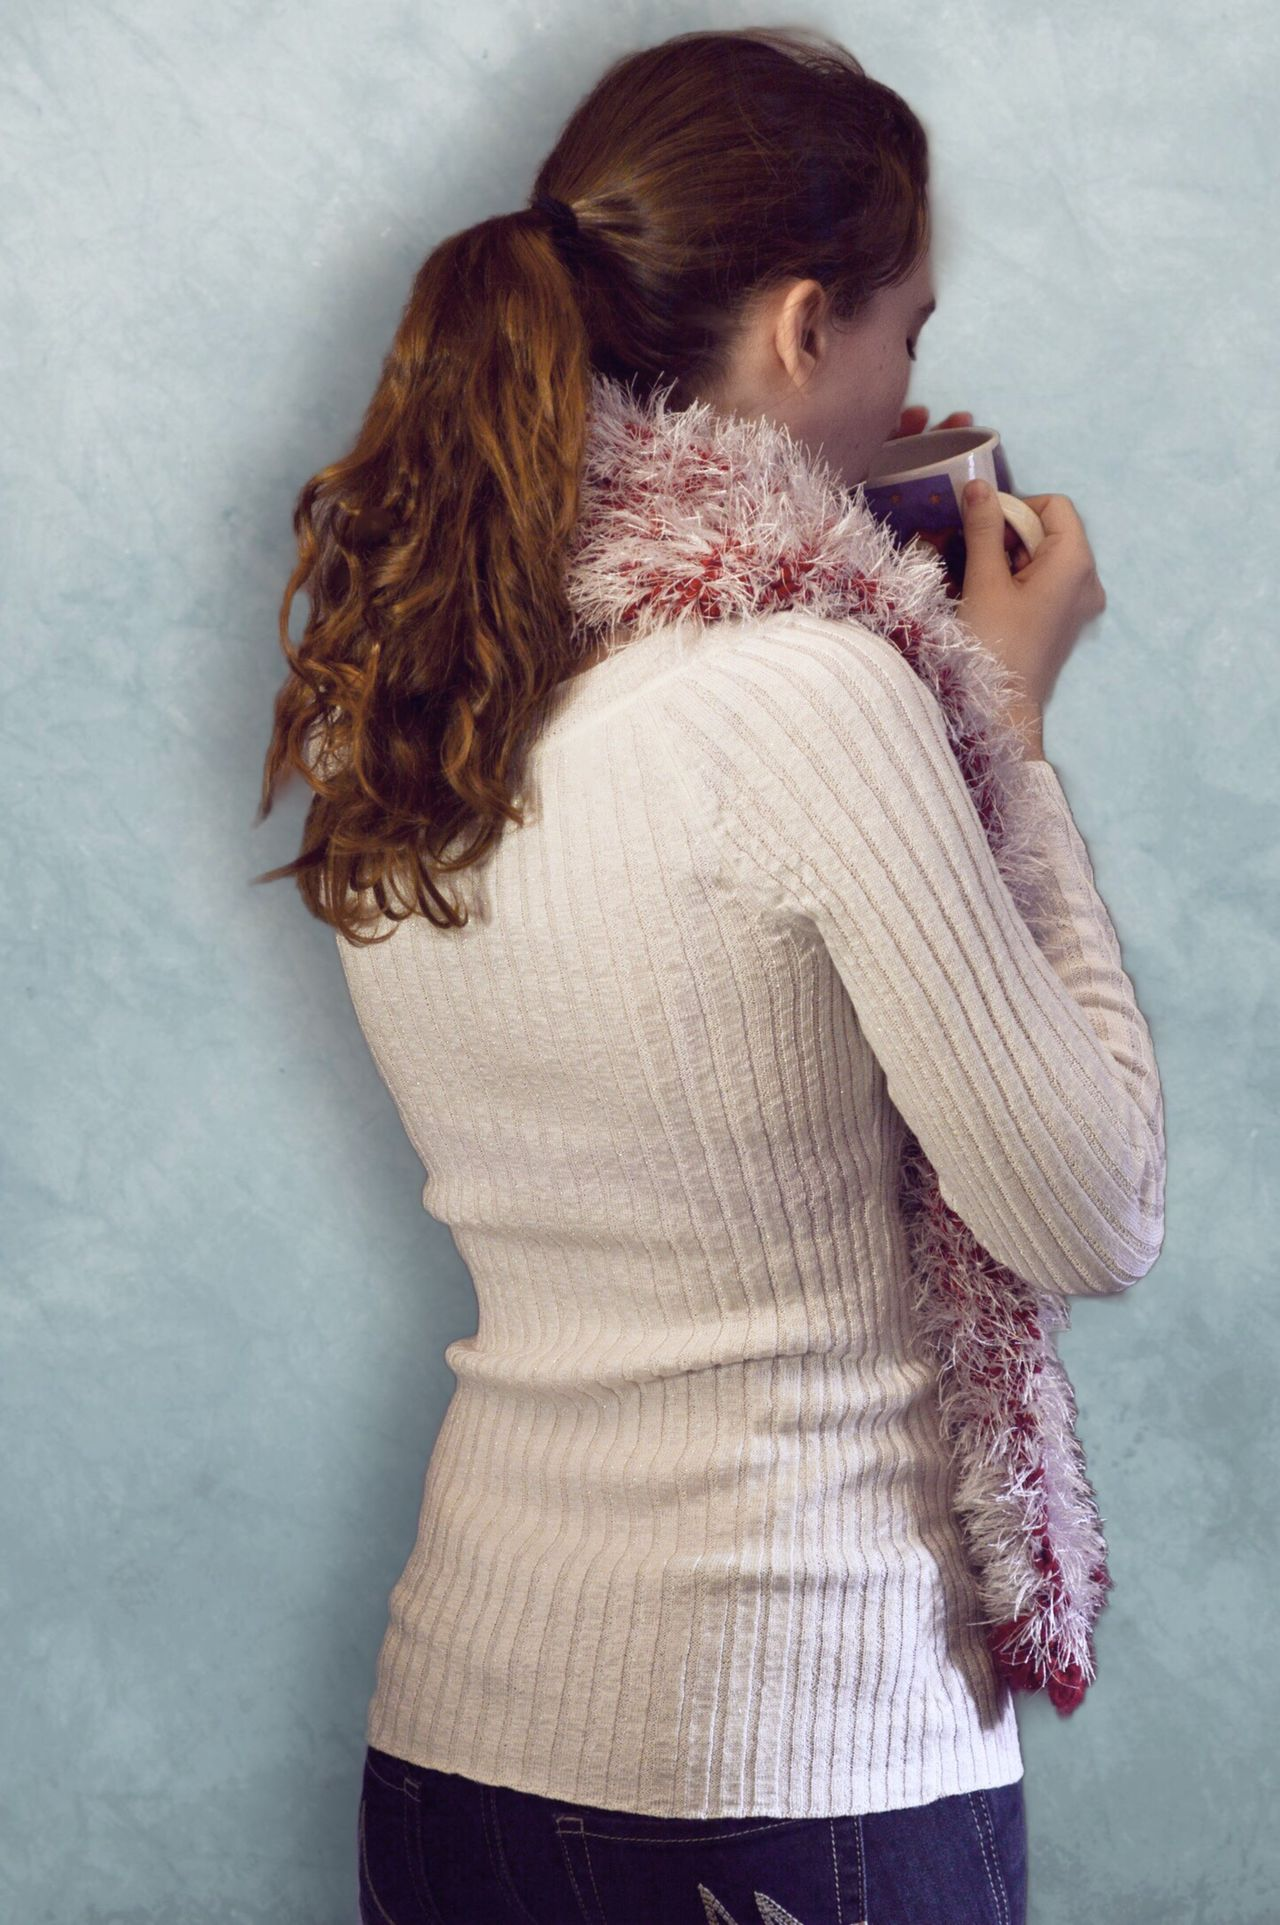 Enjoying coffee Rear View Real People Standing Sweater Lifestyles Beautiful Woman Beauty Women Young Women Indoors  Young Adult One Woman Only People Adults Only Only Women Adult Knitted  White Shirt Woman Portrait Woman Drinking Coffee Drinking Coffee Model Fashion Winter Fashion